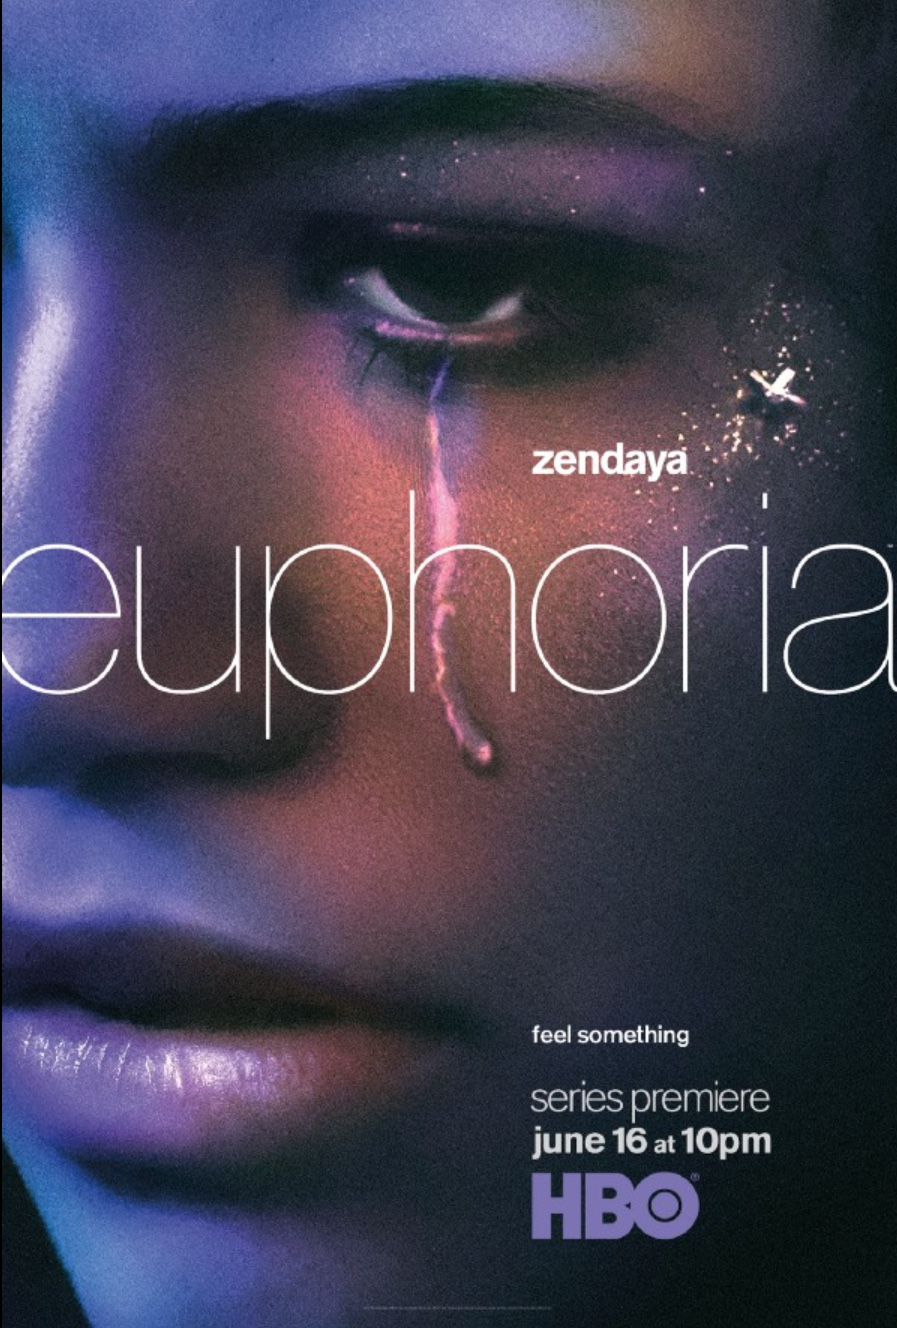 Season 1 of Euphoria stars Zendaya, Maude Apatow and Angus Cloud. It premiered on Aug 4, 2019 on HBO.